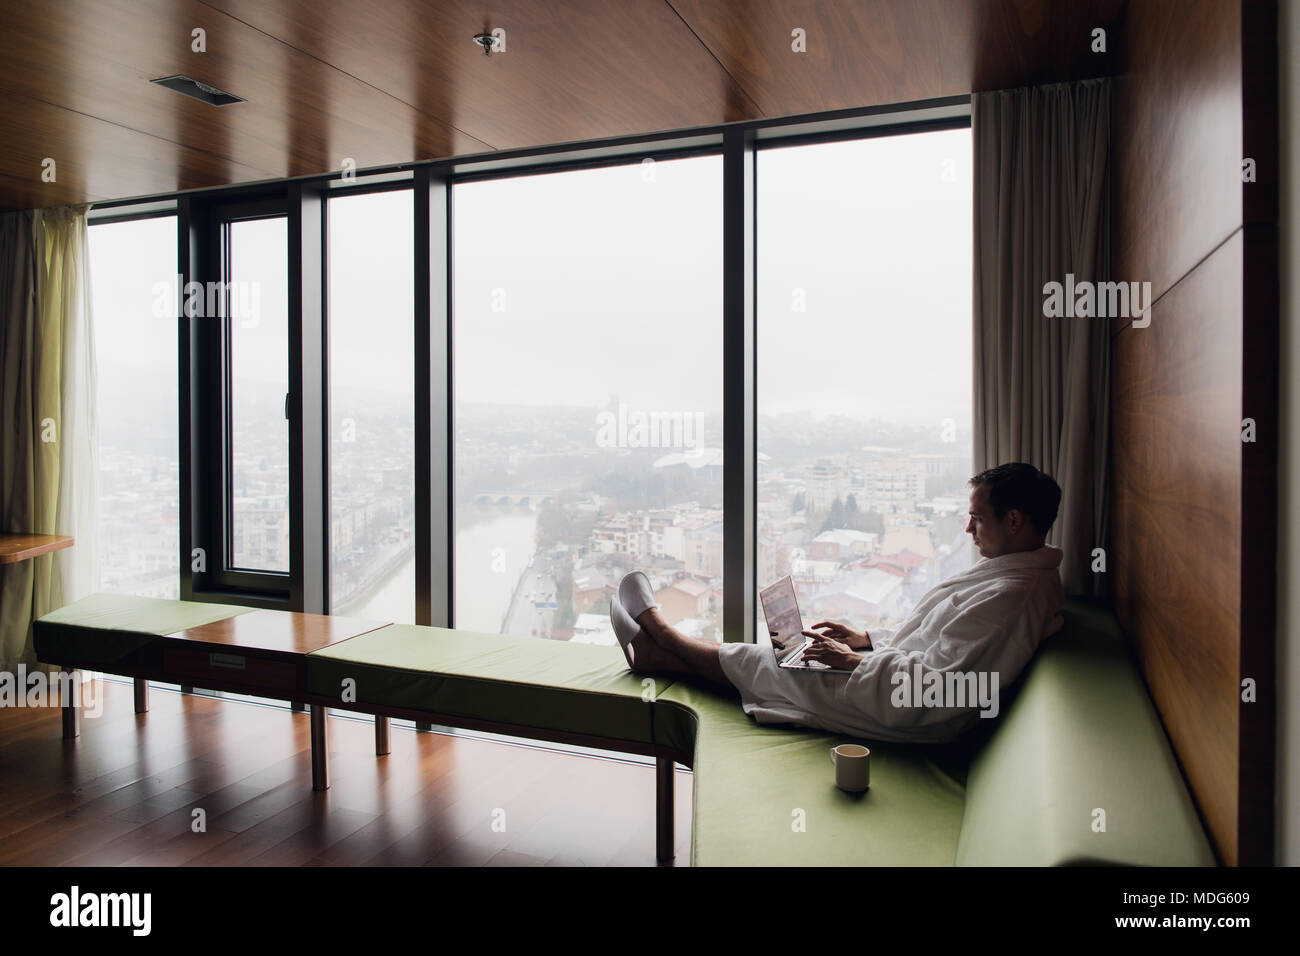 Attractive Man enjoying his morning coffee on his computer at his hotel room - Stock Image